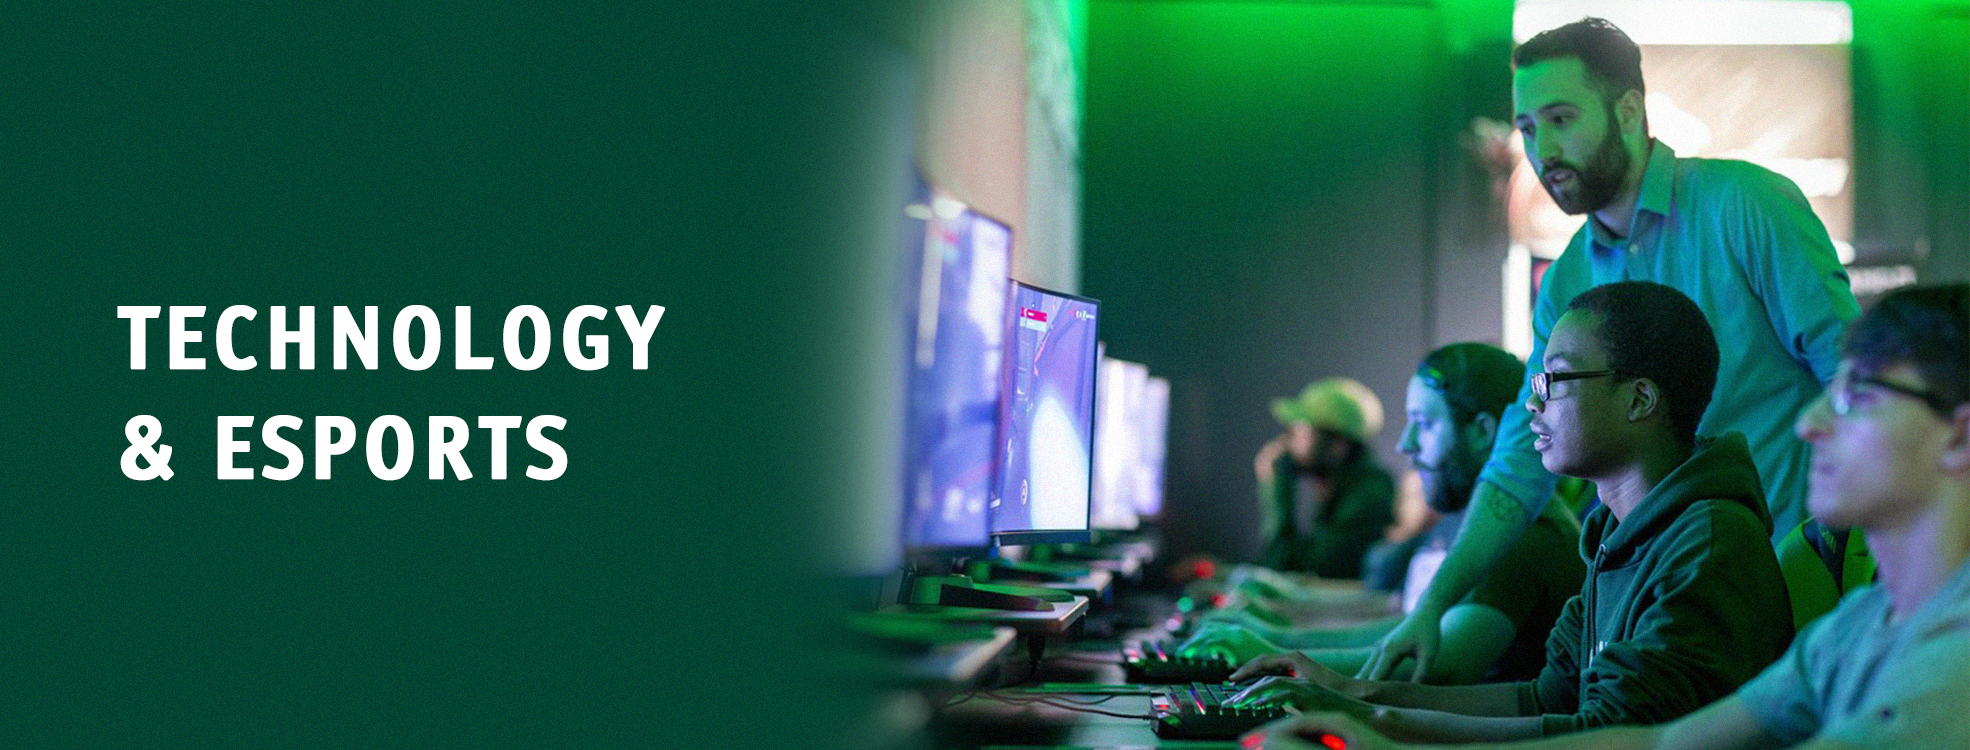 Summer Program - Electronics | eSports and Technology | Summer Pre-College Program for High School Students at Wagner College